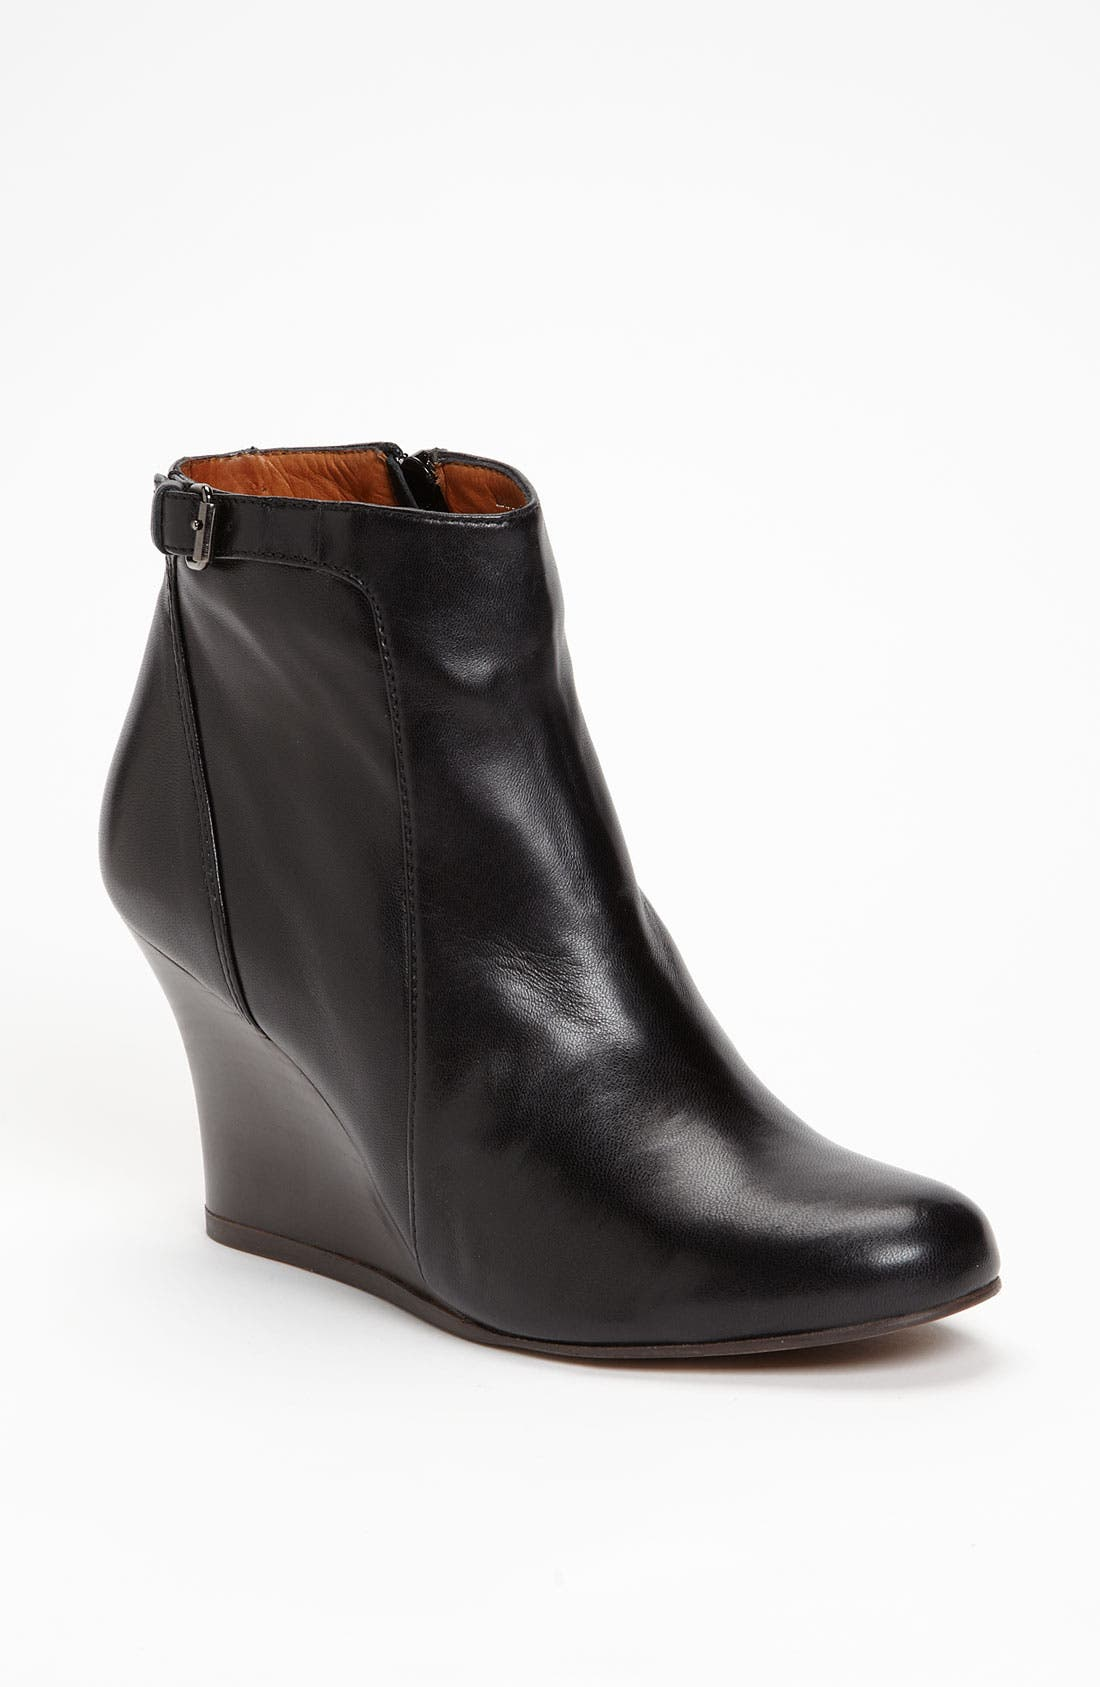 Main Image - Lanvin 'Faubourg' Wedge Bootie